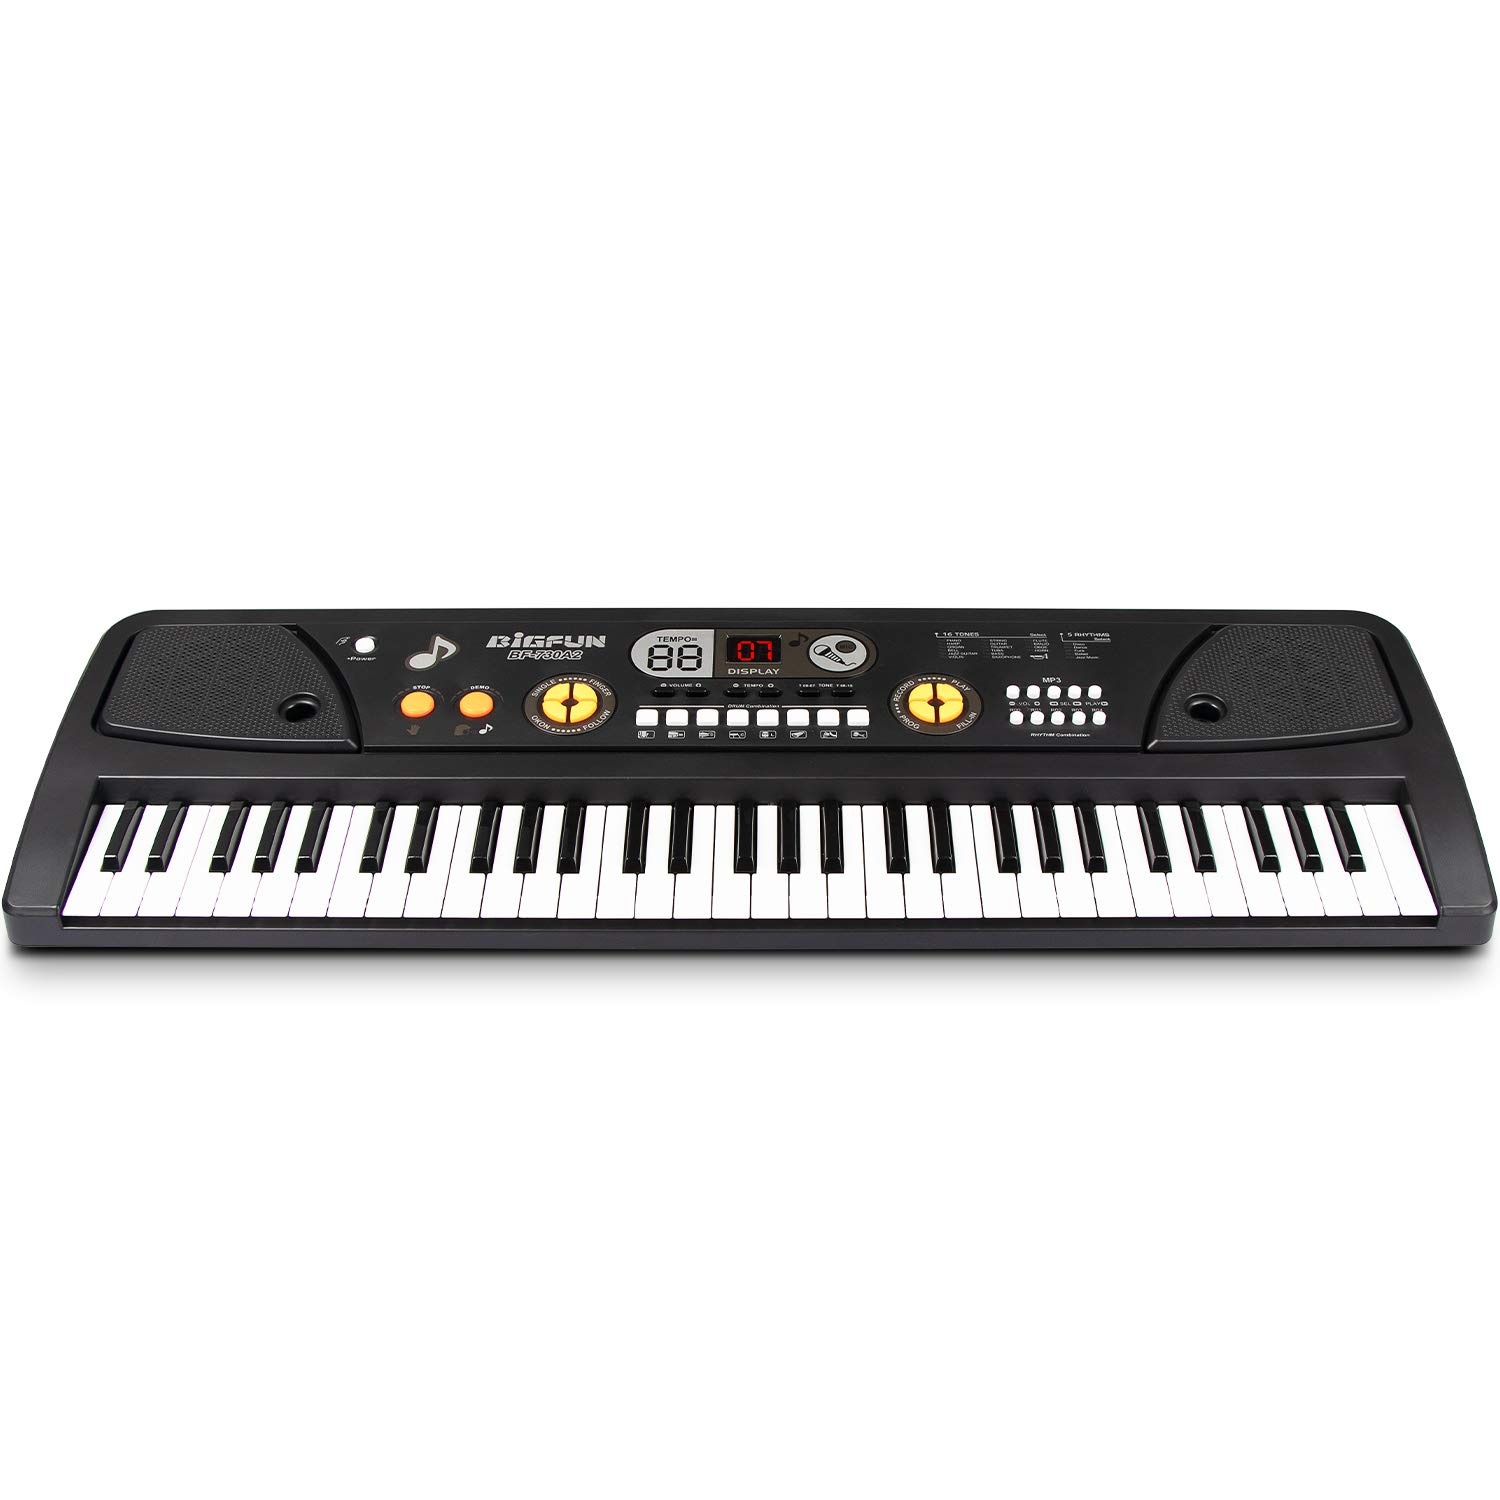 SAOCOOL Music Piano Keyboards, 61 Keys Multifunction Piano Keyboard Electronic Piano Keyboard Music Piano Toys with Microphone (Black) by SAOCOOL